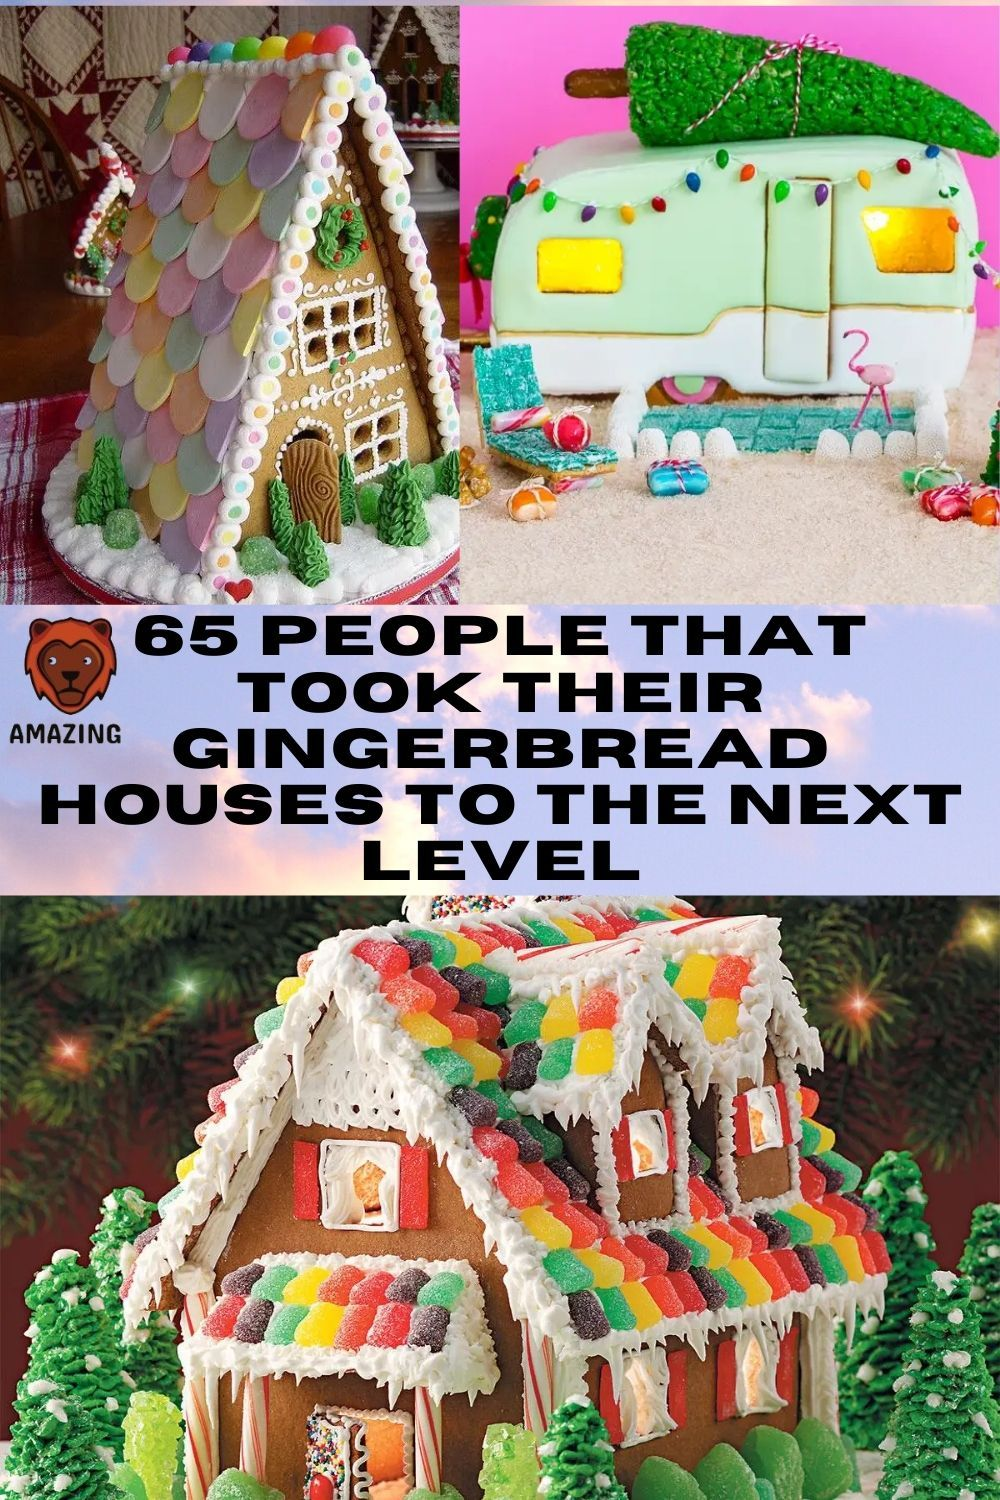 65 people that took their gingerbread houses to the next